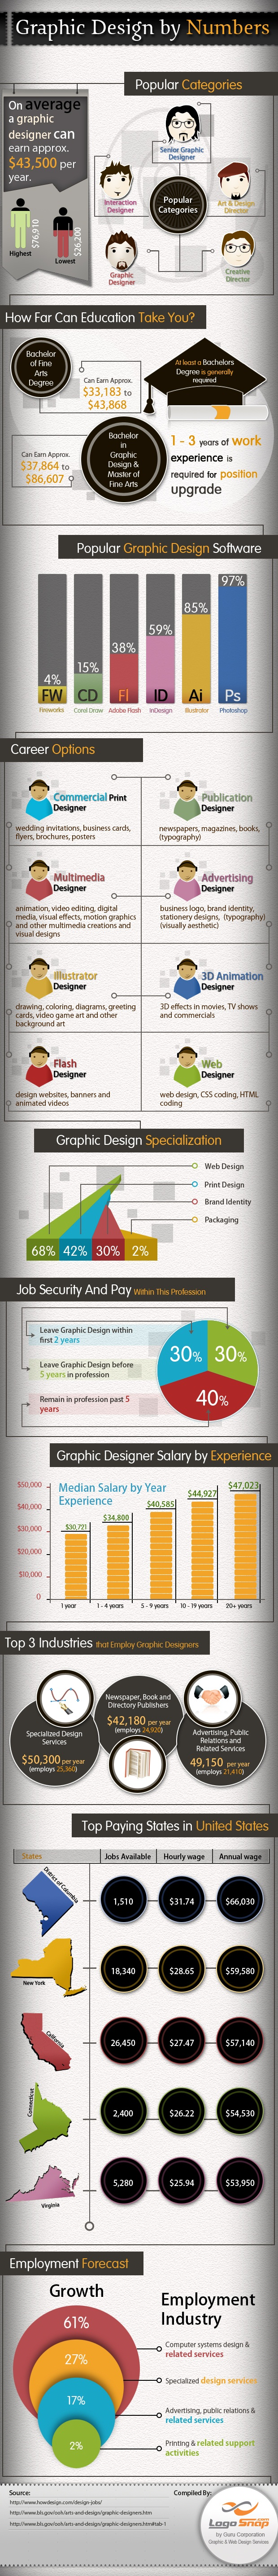 Top 3 Industries Recruiting Graphic Designers